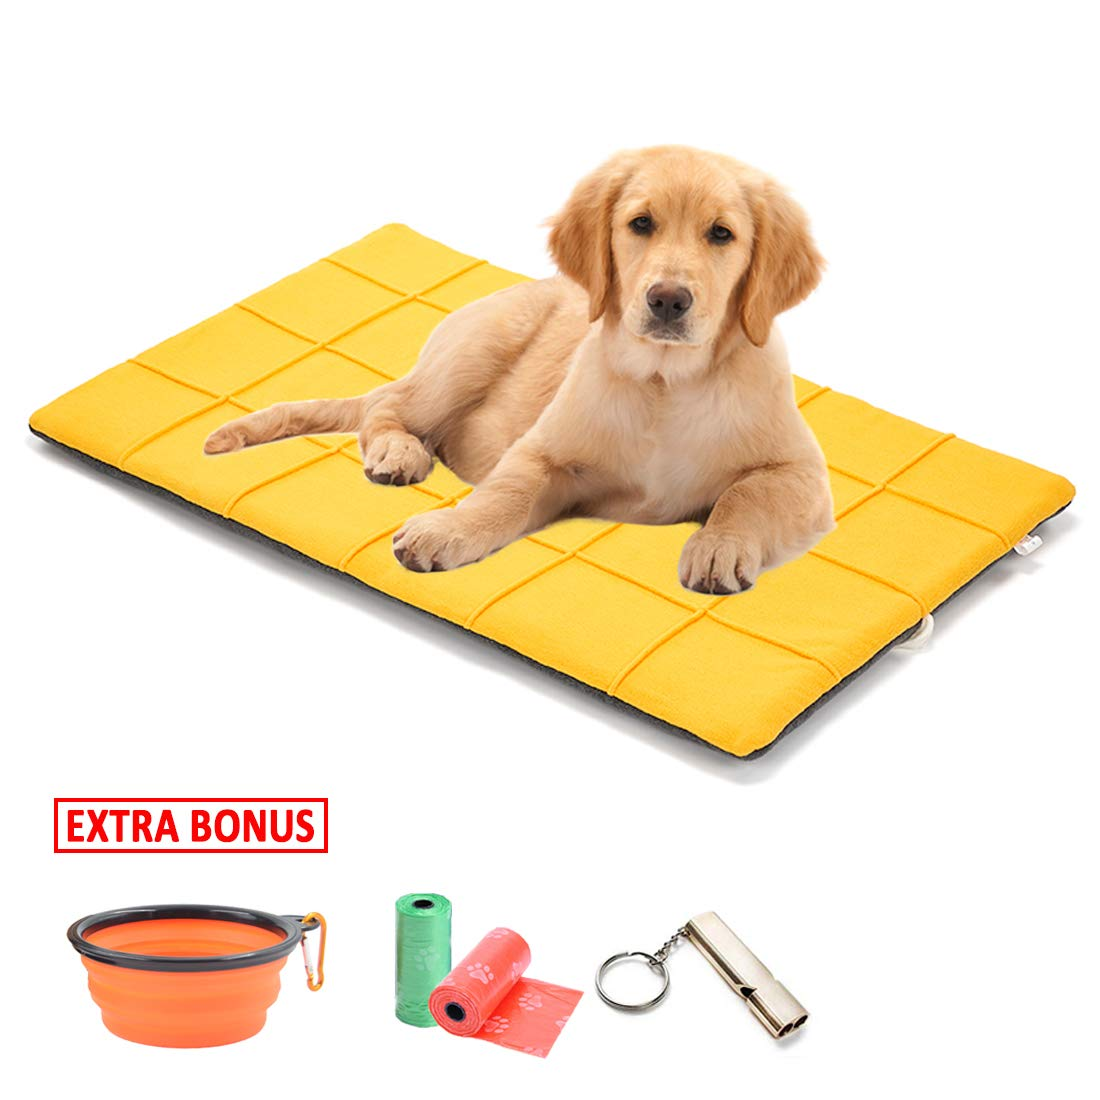 Gray,S TVMALL Dog Bed Mat Comfortable Soft Cat Dog Sofa Cushion Washable Pet Nest Kennel Pad Cat Dog Bed Blankets four Seasons Universal Suitable for Large Medium and Small Dogs to Sleep